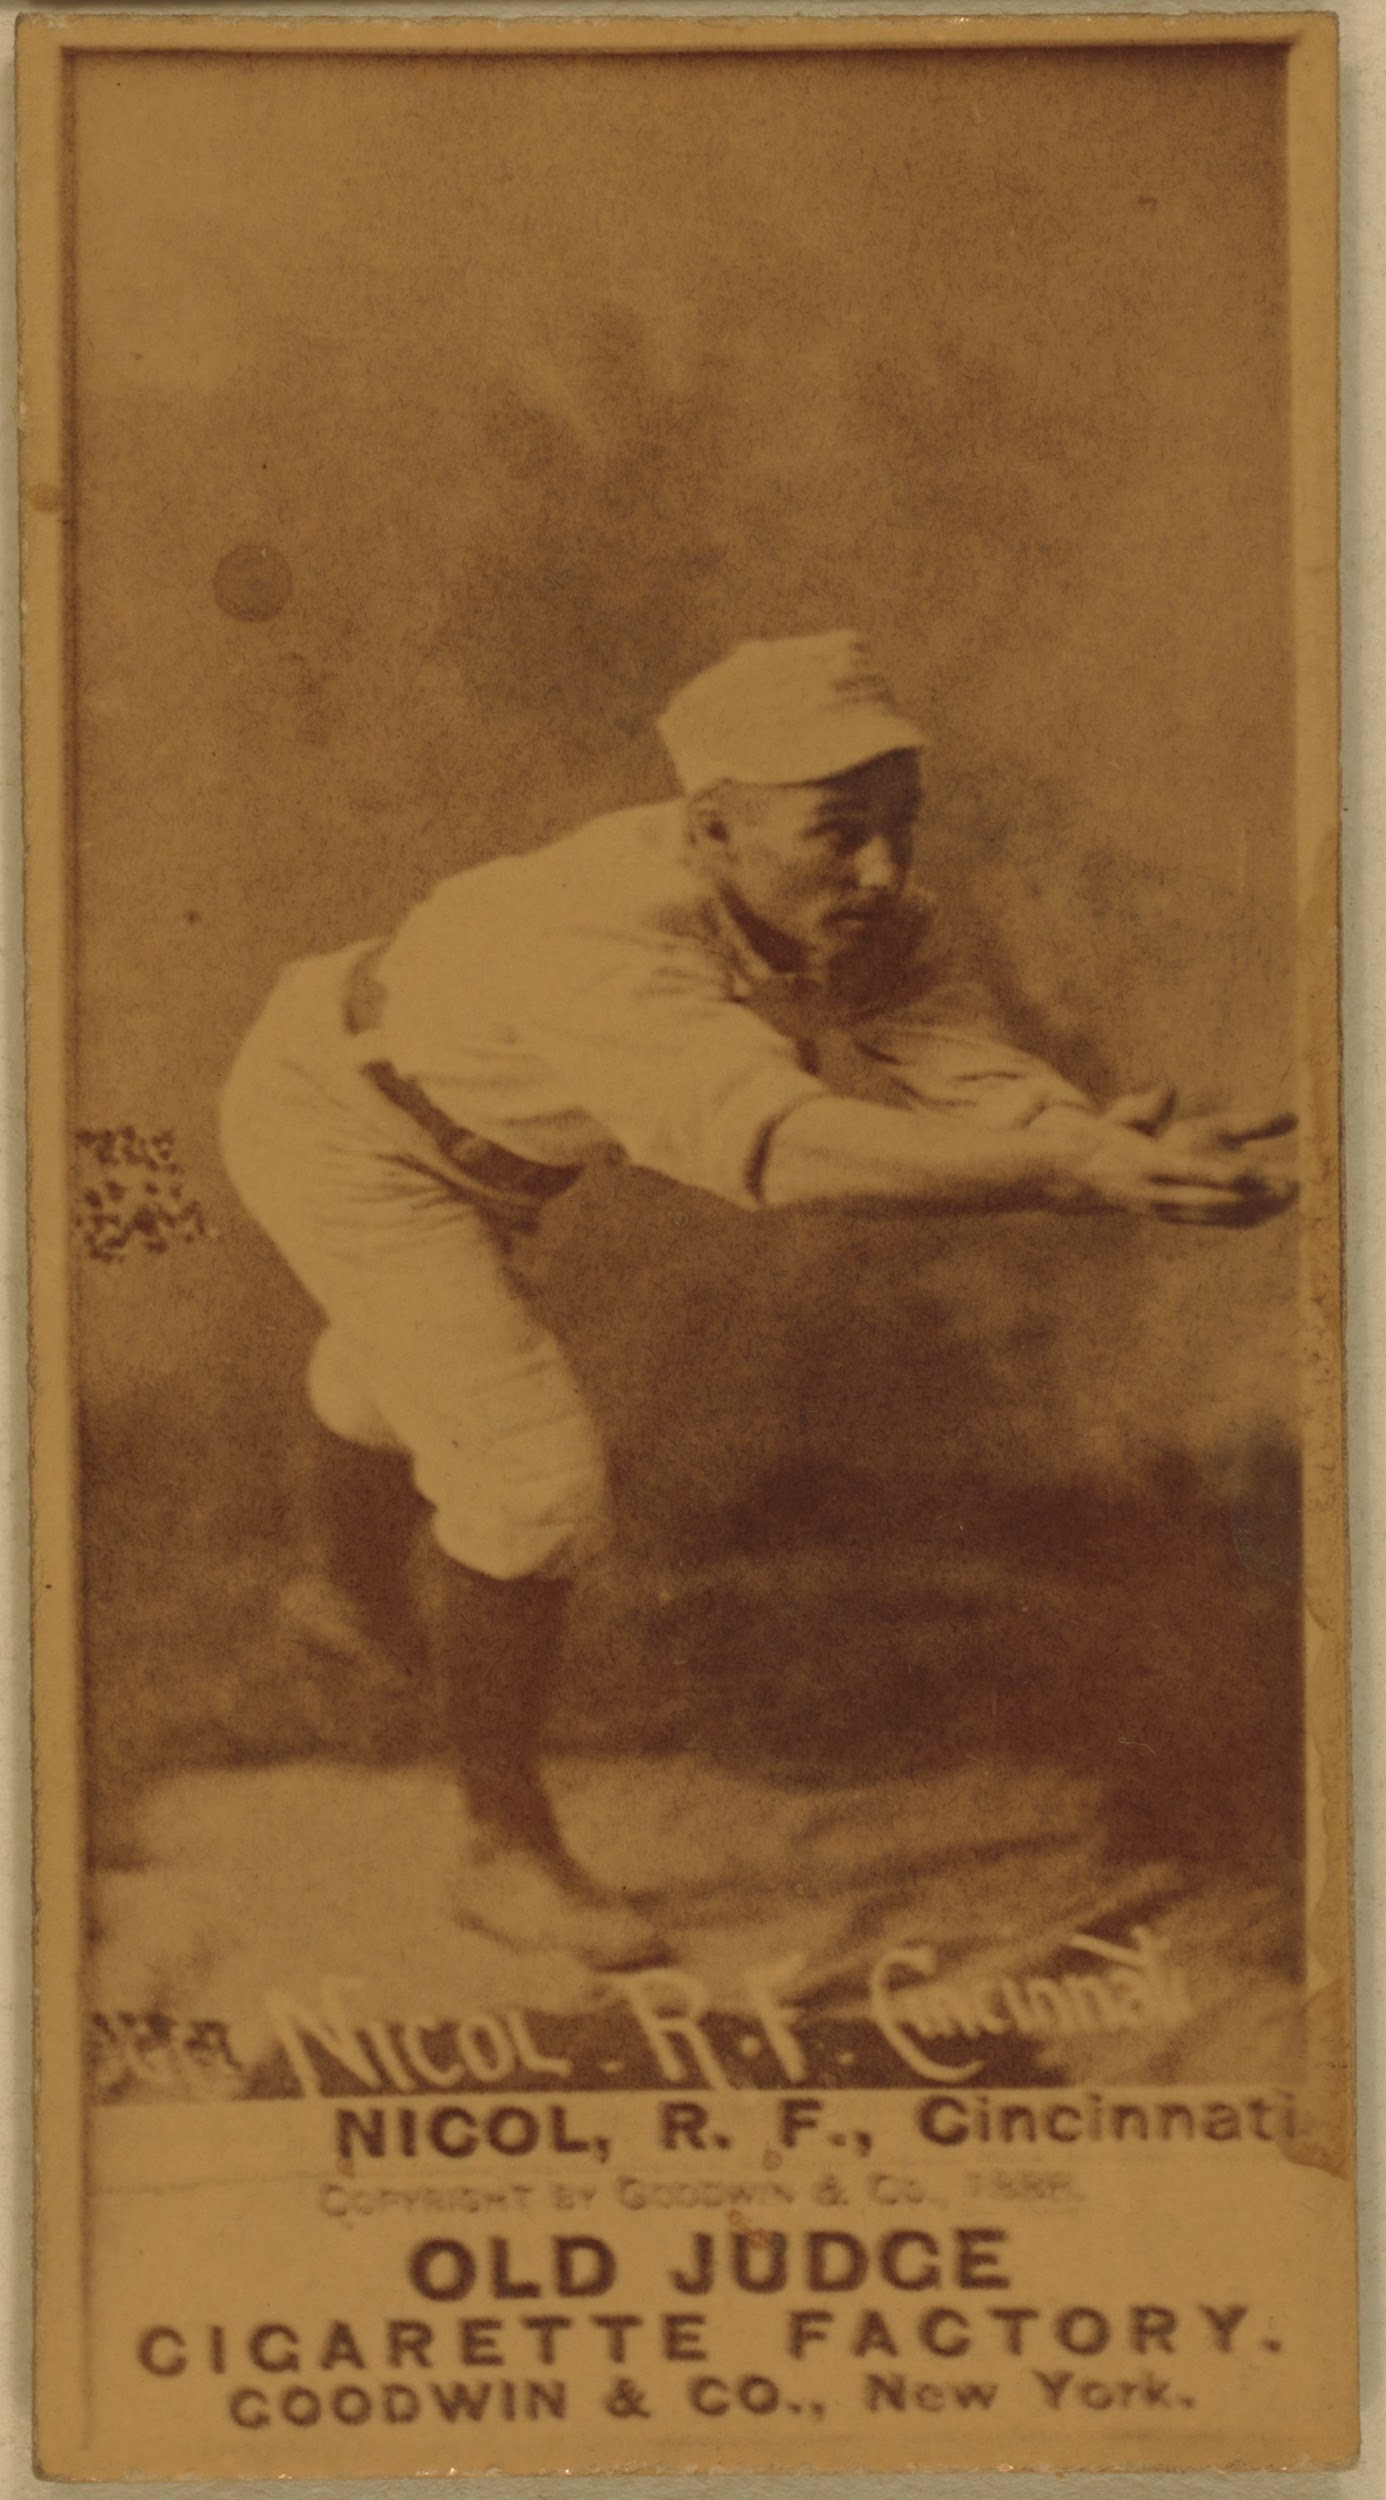 Hugh_Nicol_baseball_card.jpg